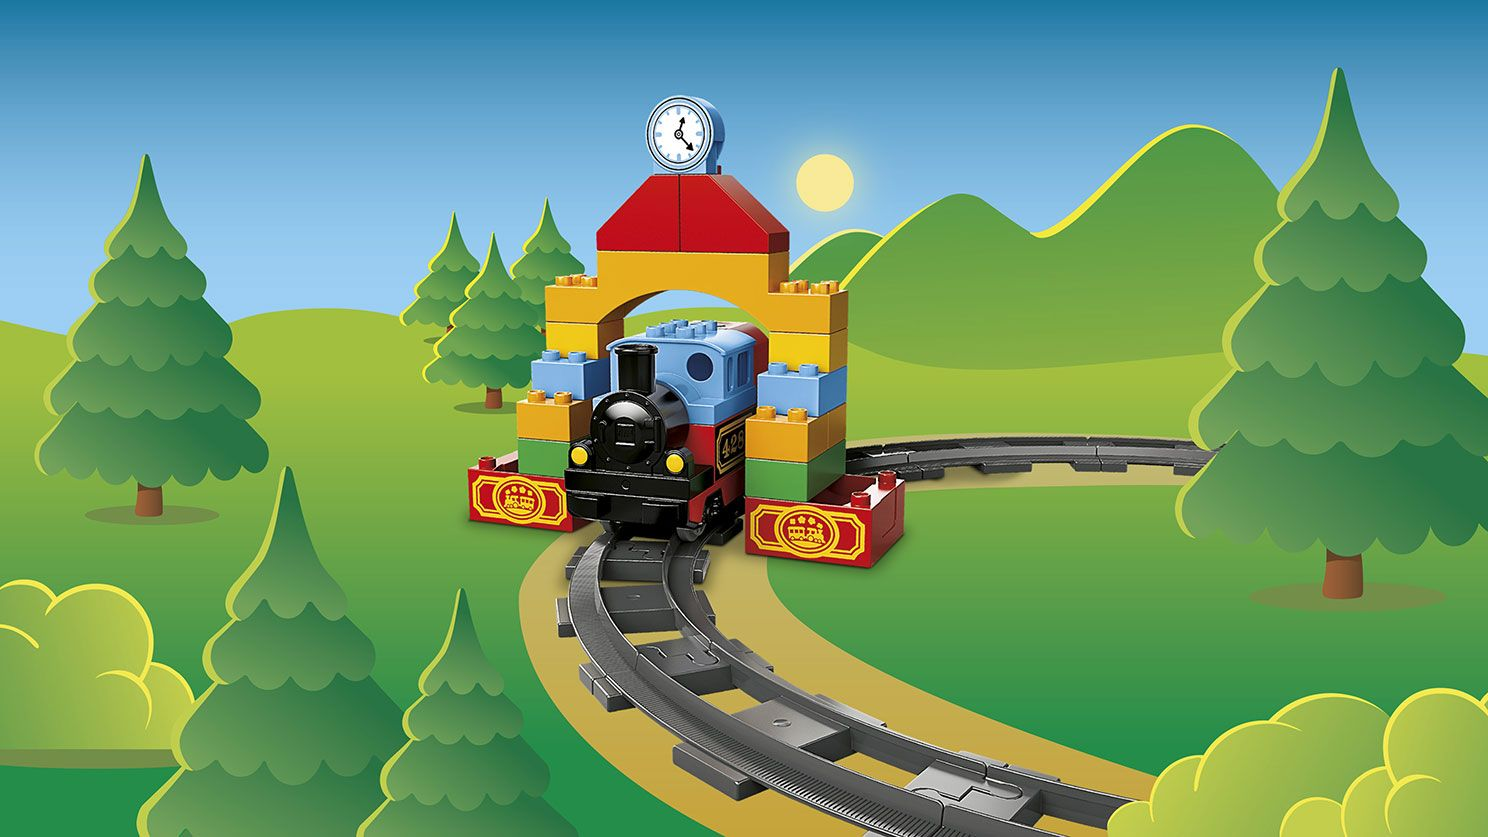 Own Duplo City, My First Train, April 2016